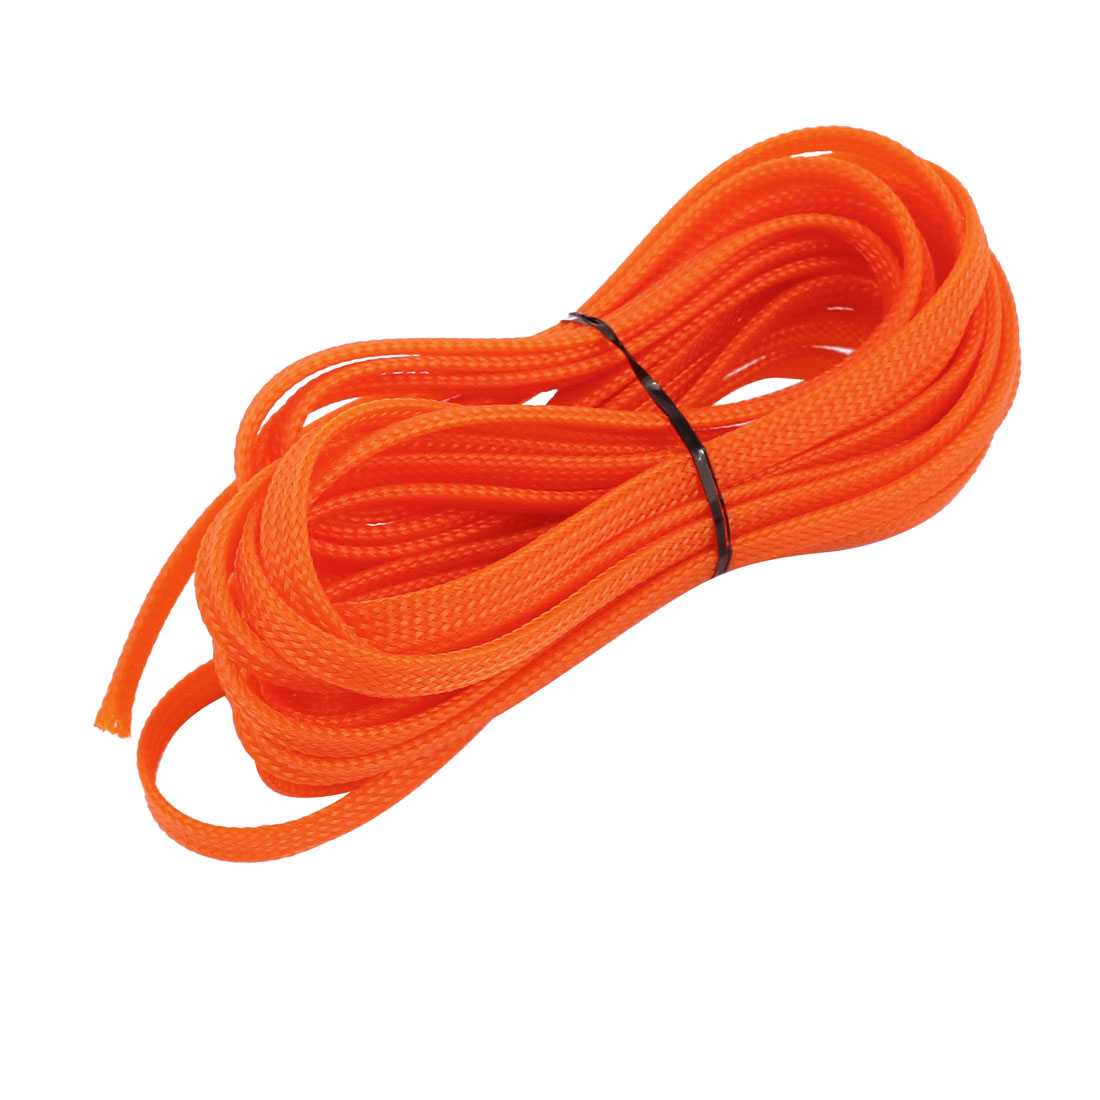 6mm Dia Tight Braided PET Expandable Sleeving Cable Wrap Sheath Orange 16Ft